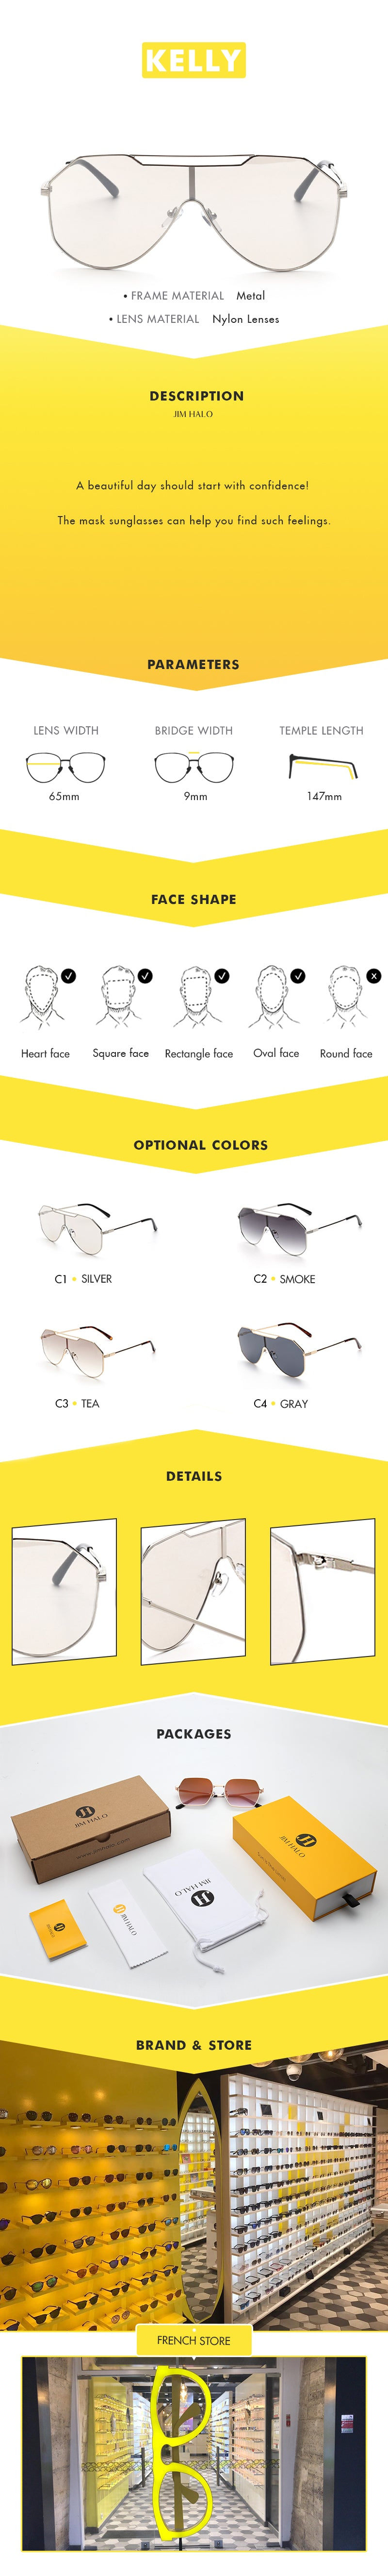 A beautiful day should start with confidence! The mask sunglasses can help you find such feelings.